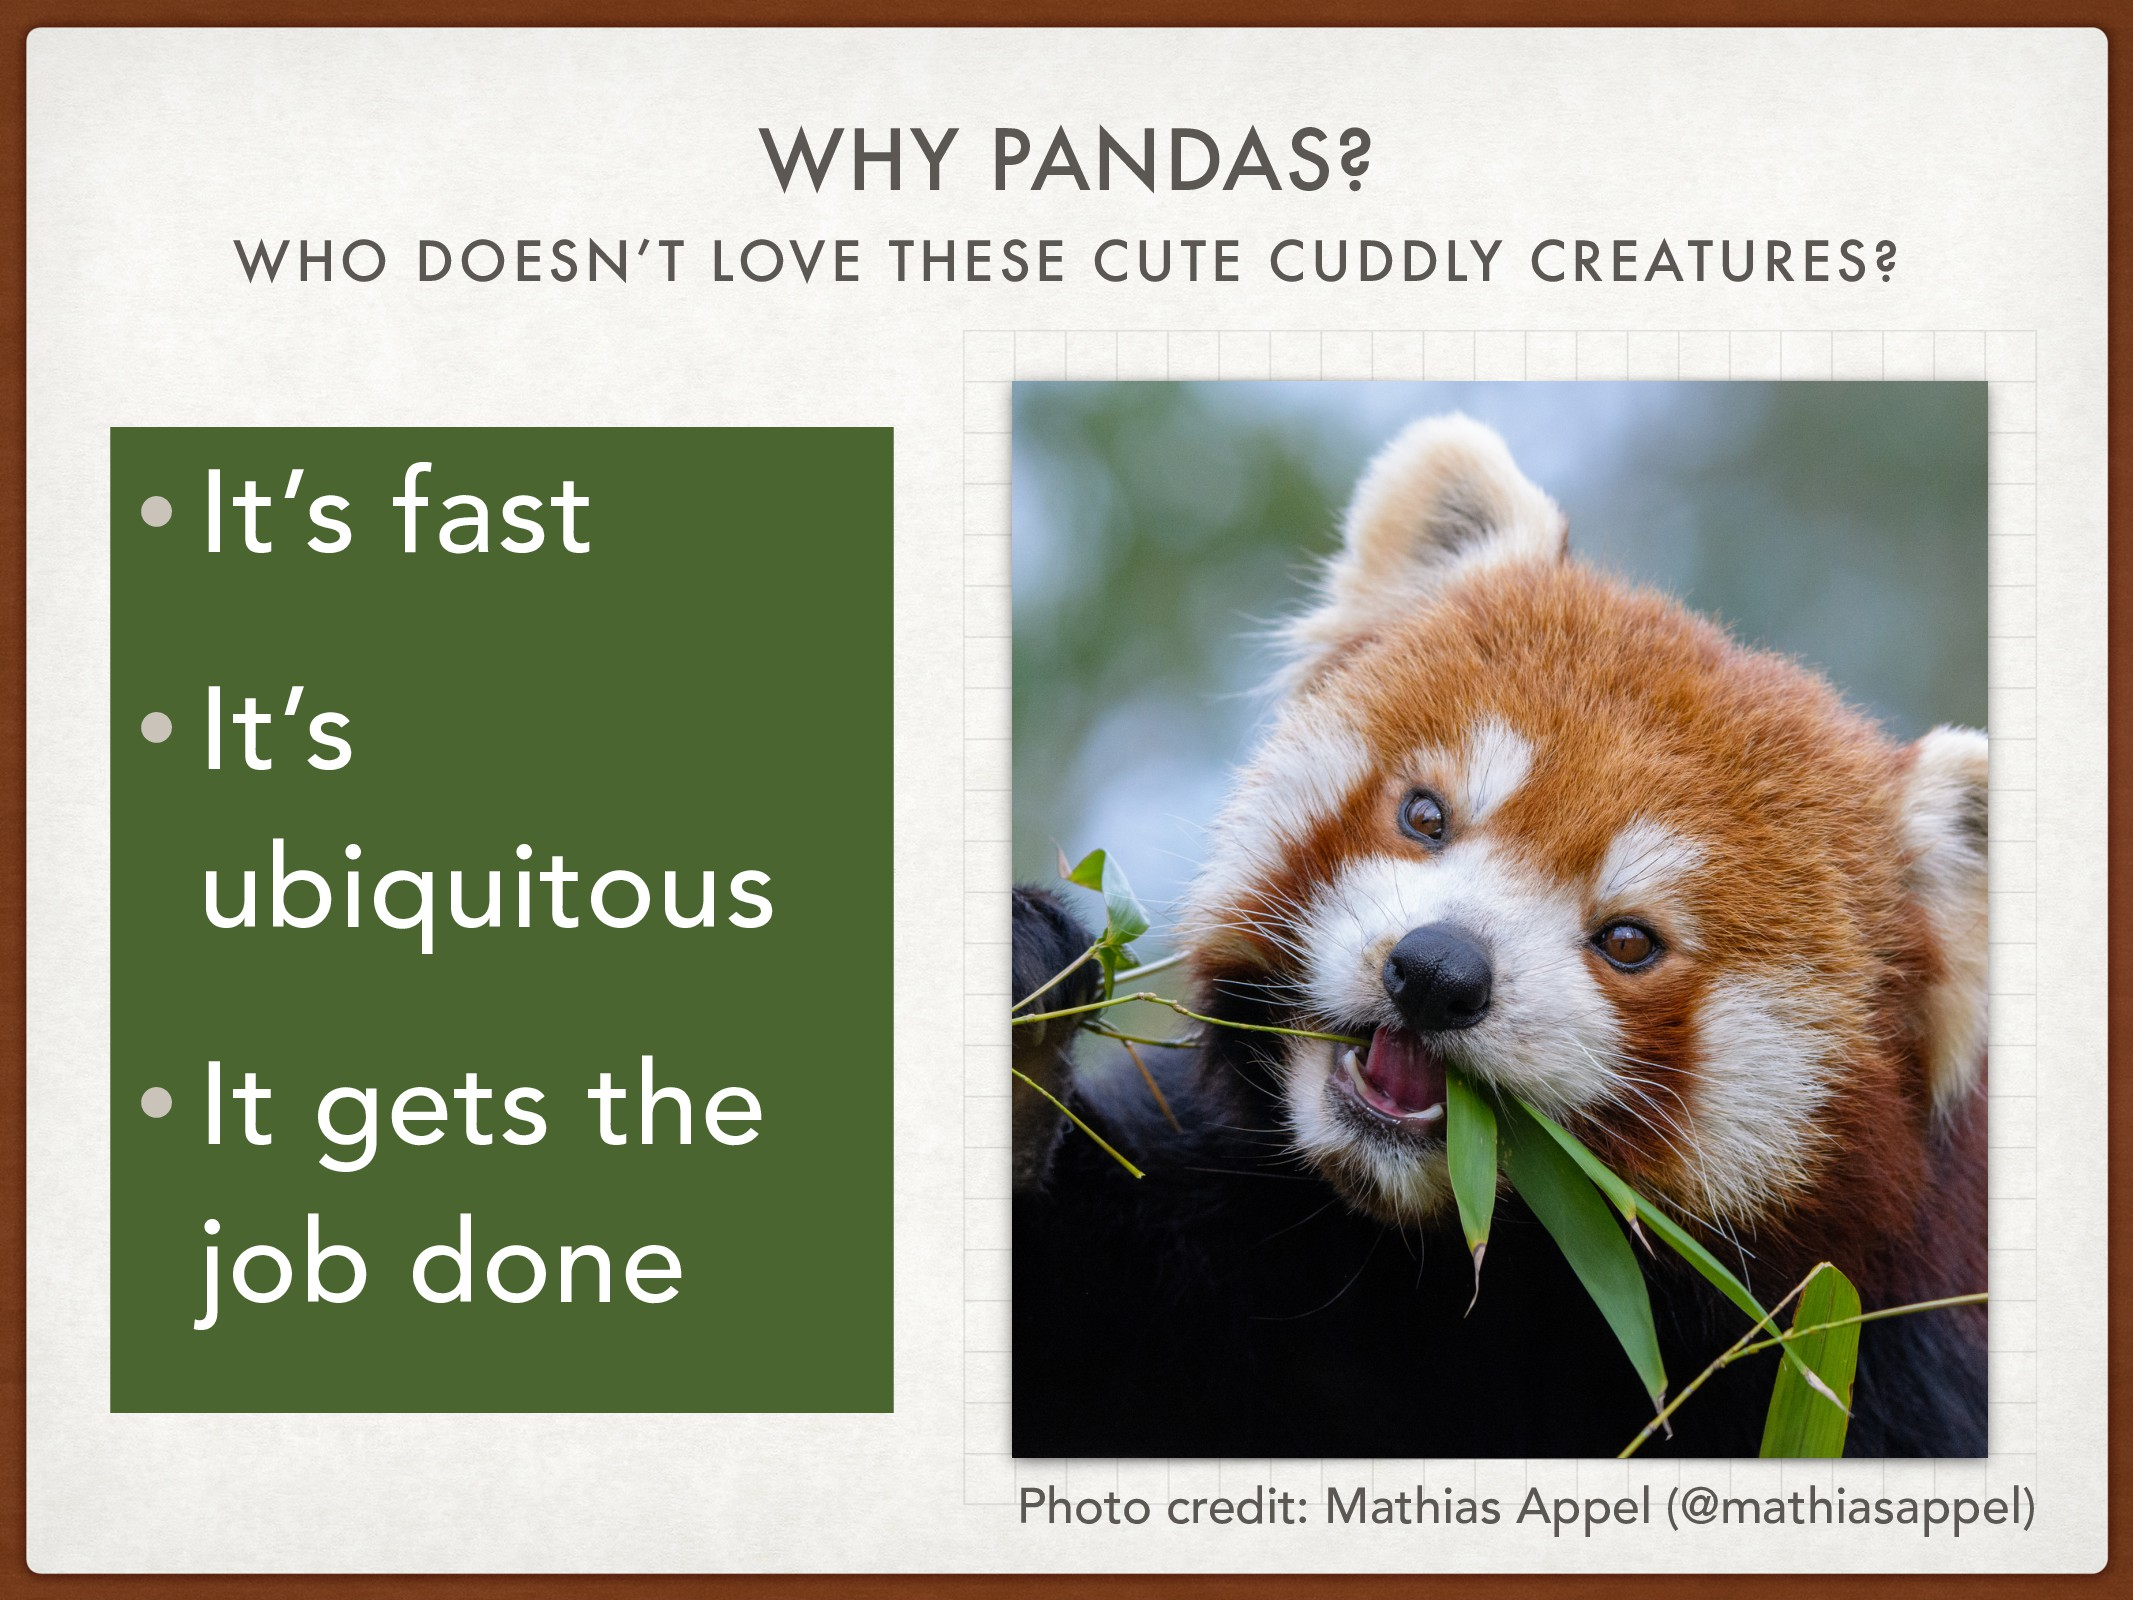 WHO DOESN'T LOVE THESE CUTE CUDDLY CREATURES? W...